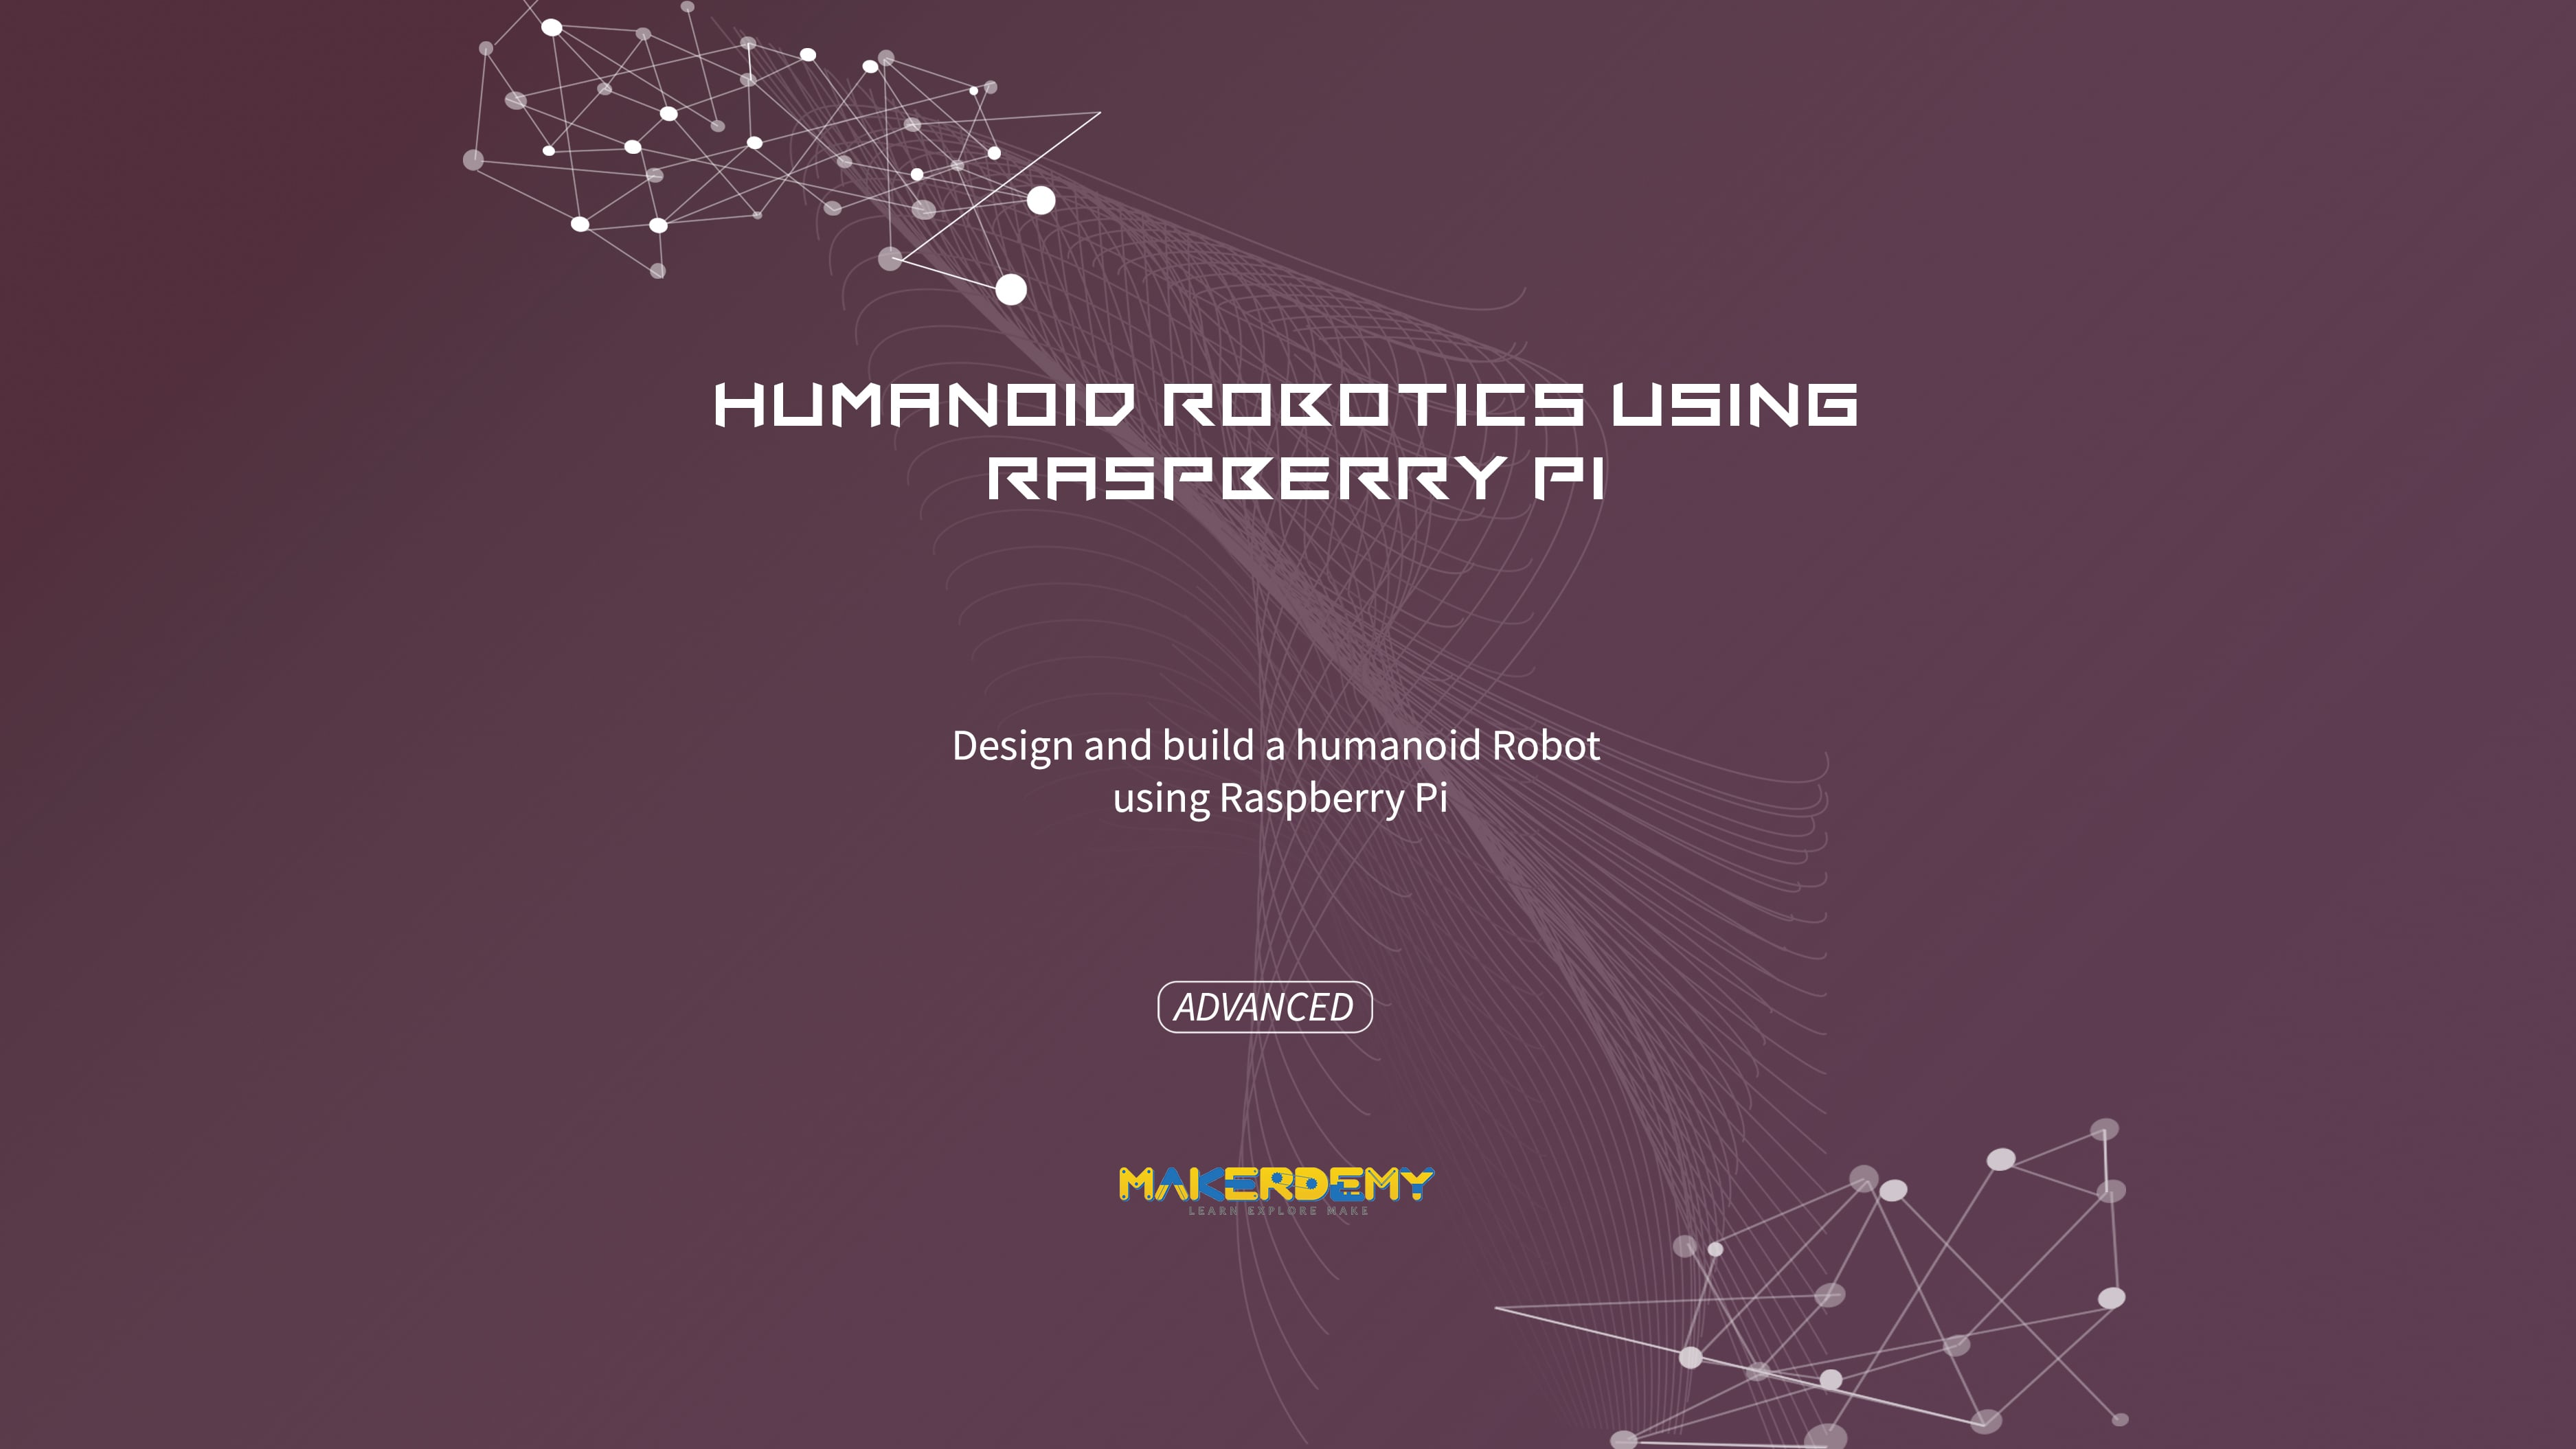 Humanoid Robotics using Raspberry Pi